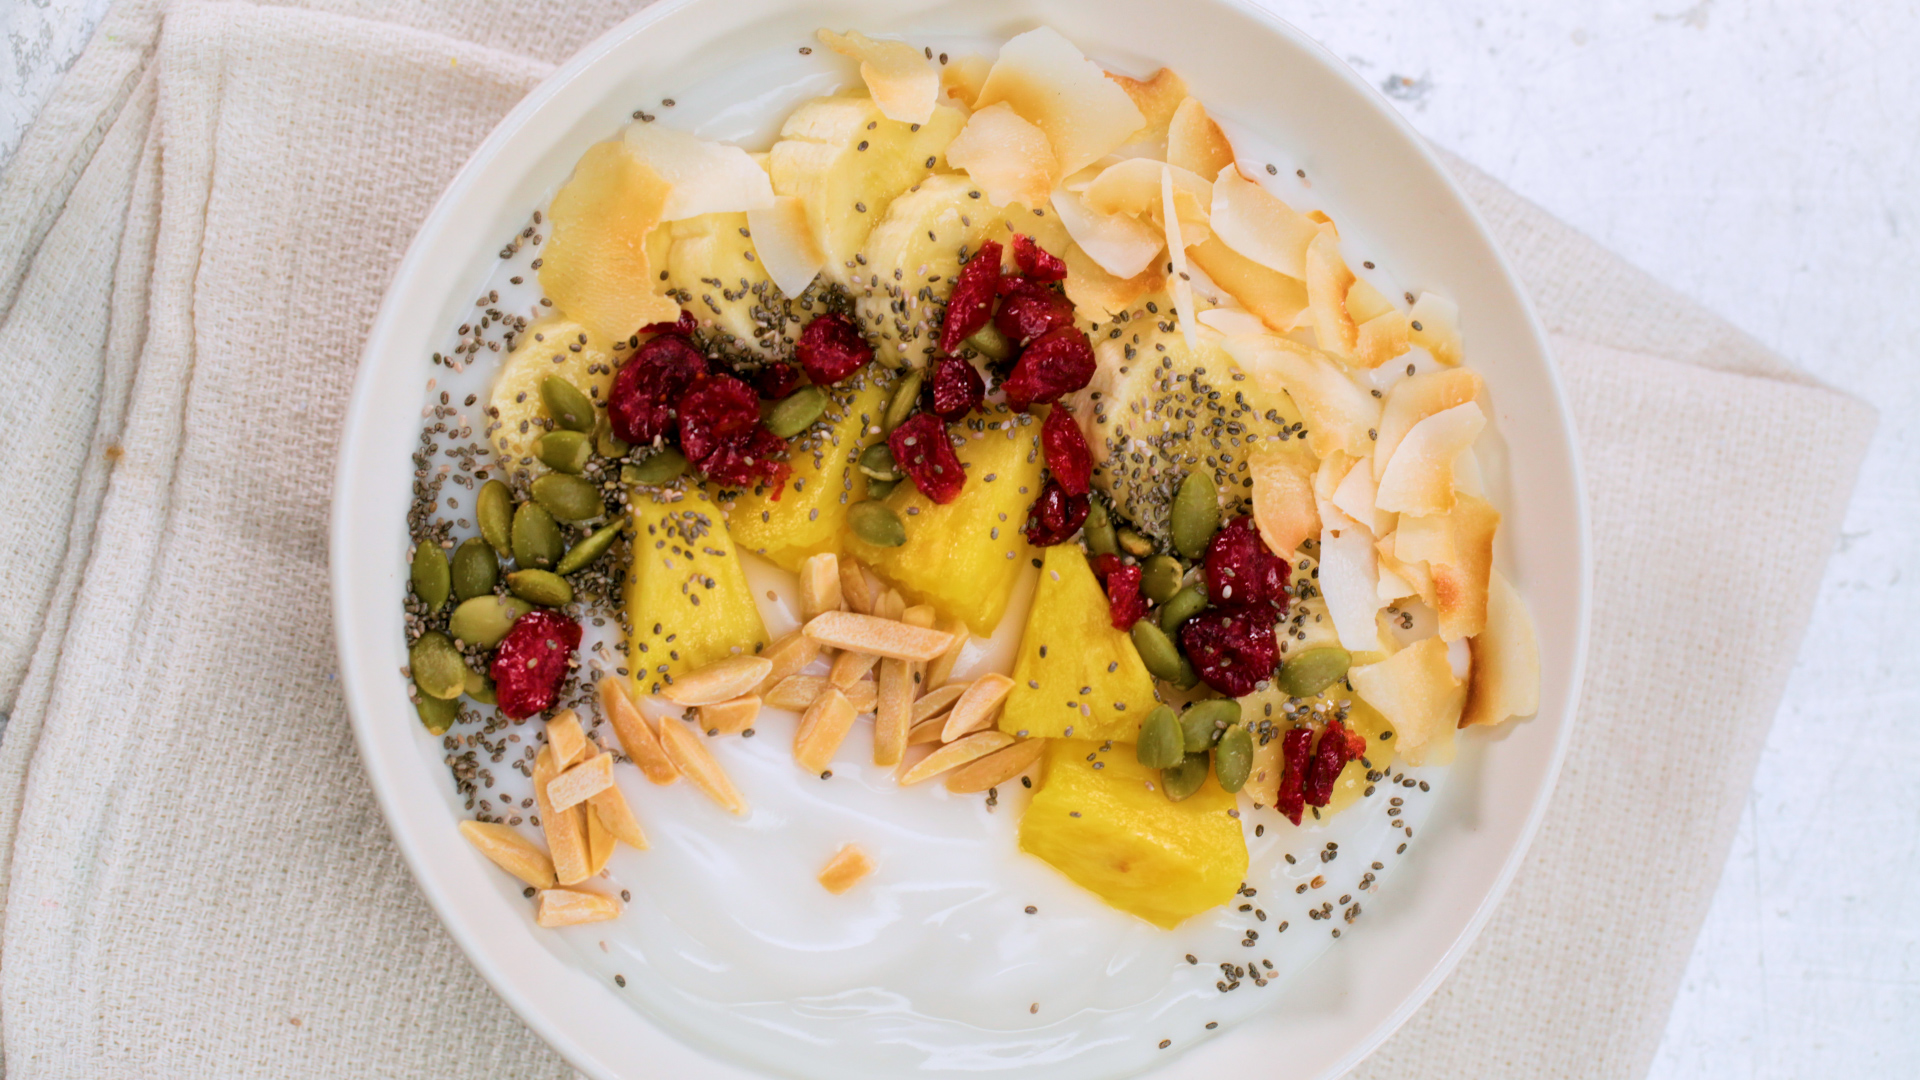 yogurt bowl with fruit and seeds from above